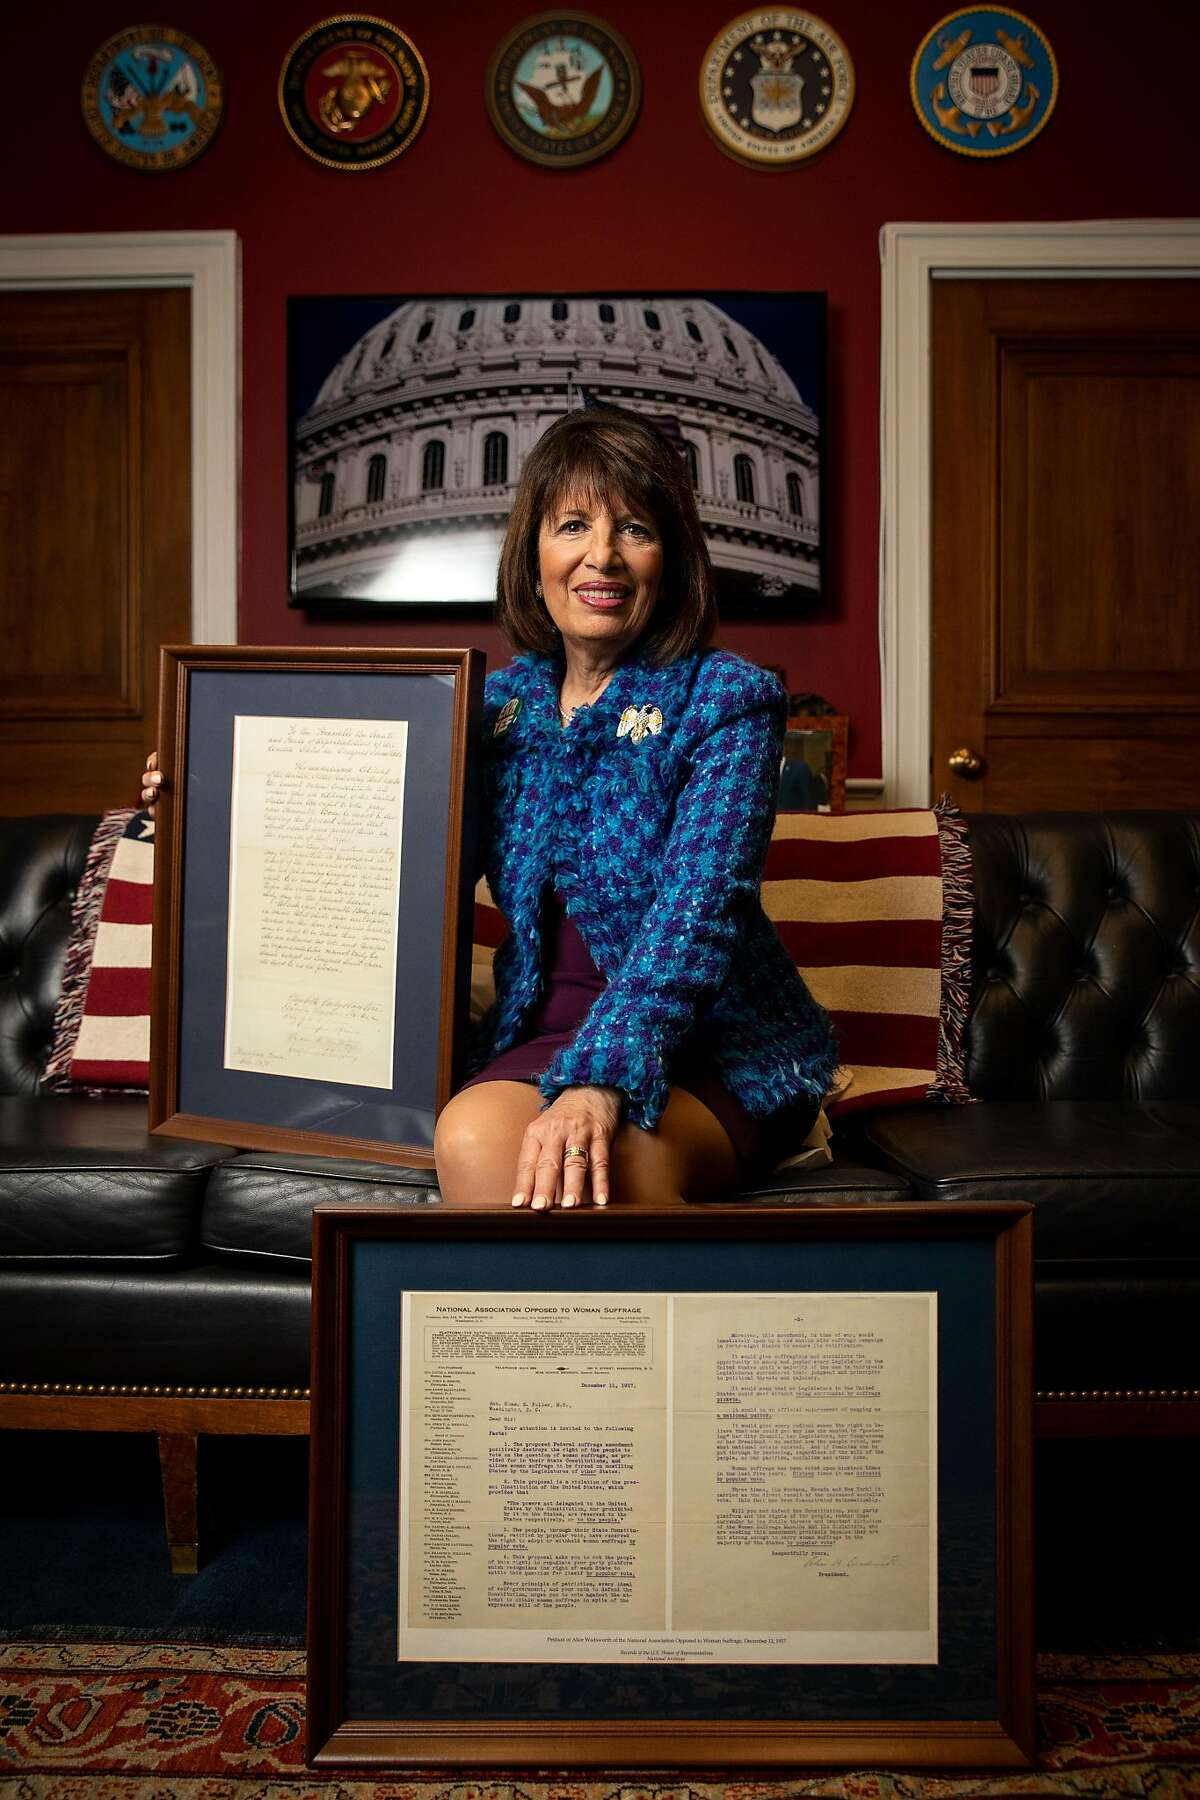 Rep. Jackie Speier, a Democrat representing California�s 14th congressional district, poses with a letter from Alice Wadsworth and the National Association Opposed to Women�s Suffrage, bottom, and a letter from Elizabeth Cady Stanton, urging swift passage of the 19th Amendment, in her Washington, D.C. office on Tuesday, February 11, 2020.